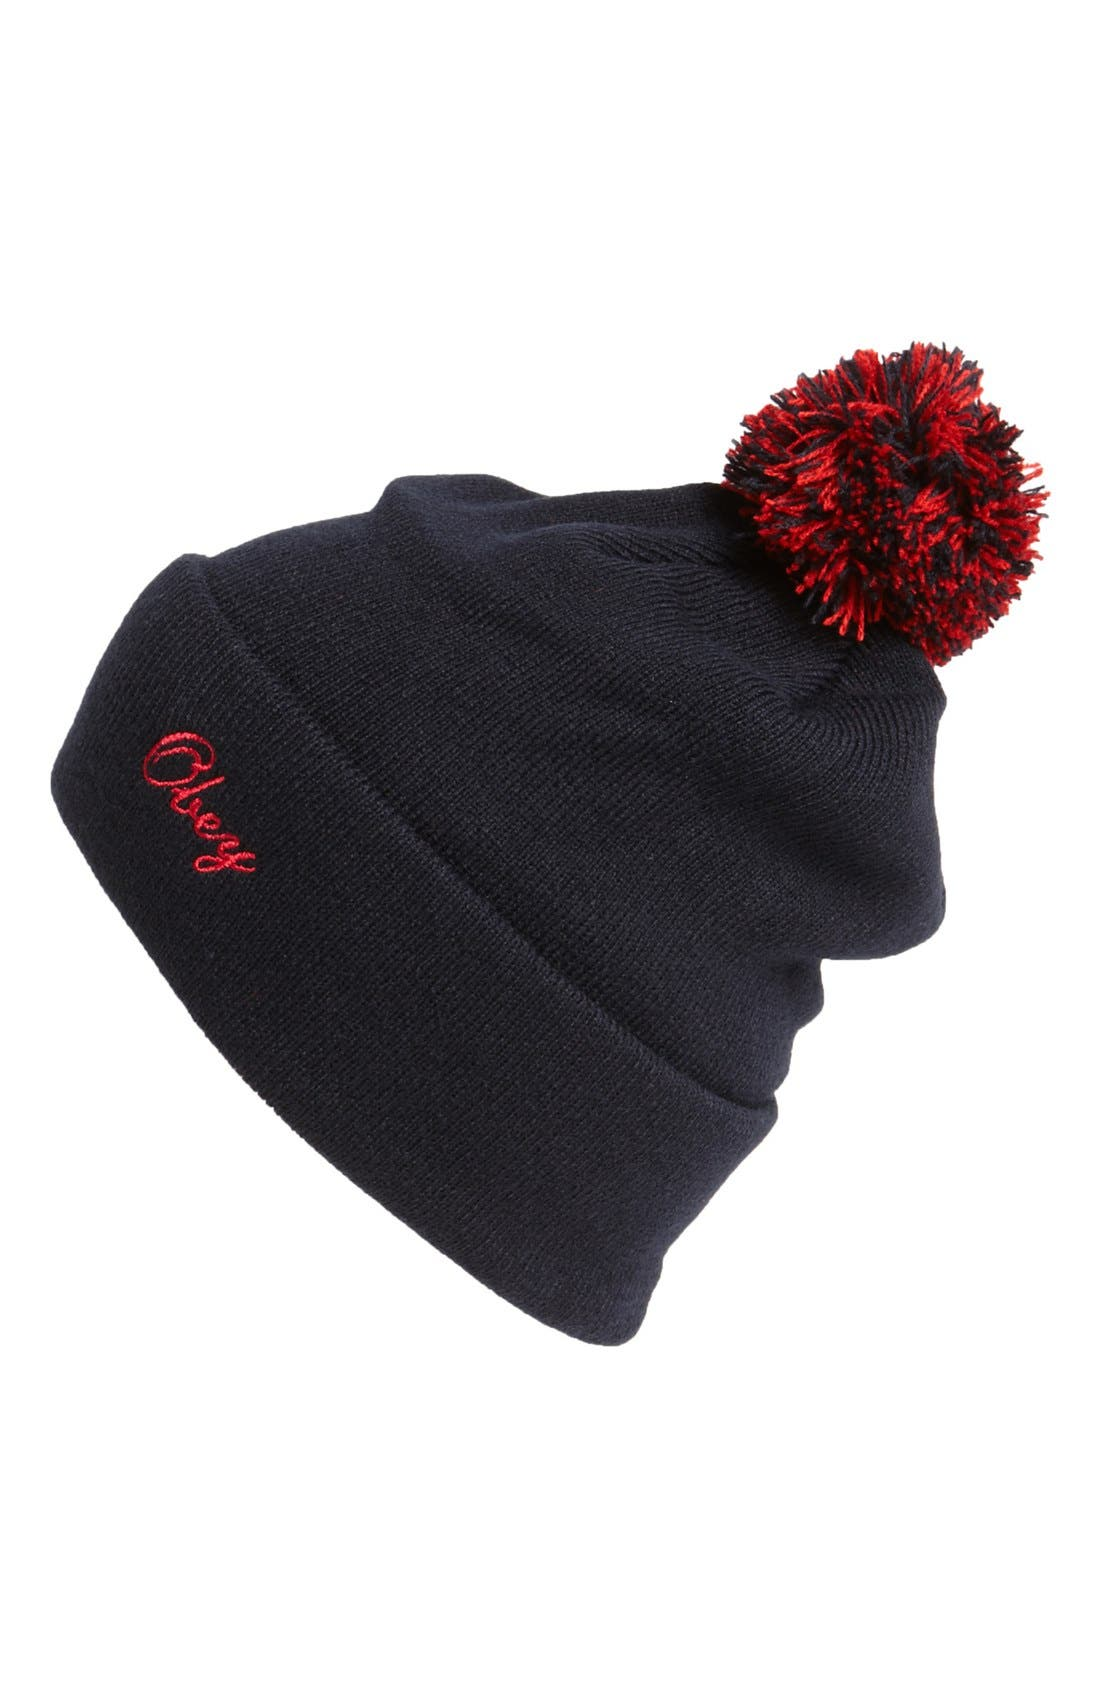 Alternate Image 1 Selected - Obey 'Sideline' Pompom Knit Cap